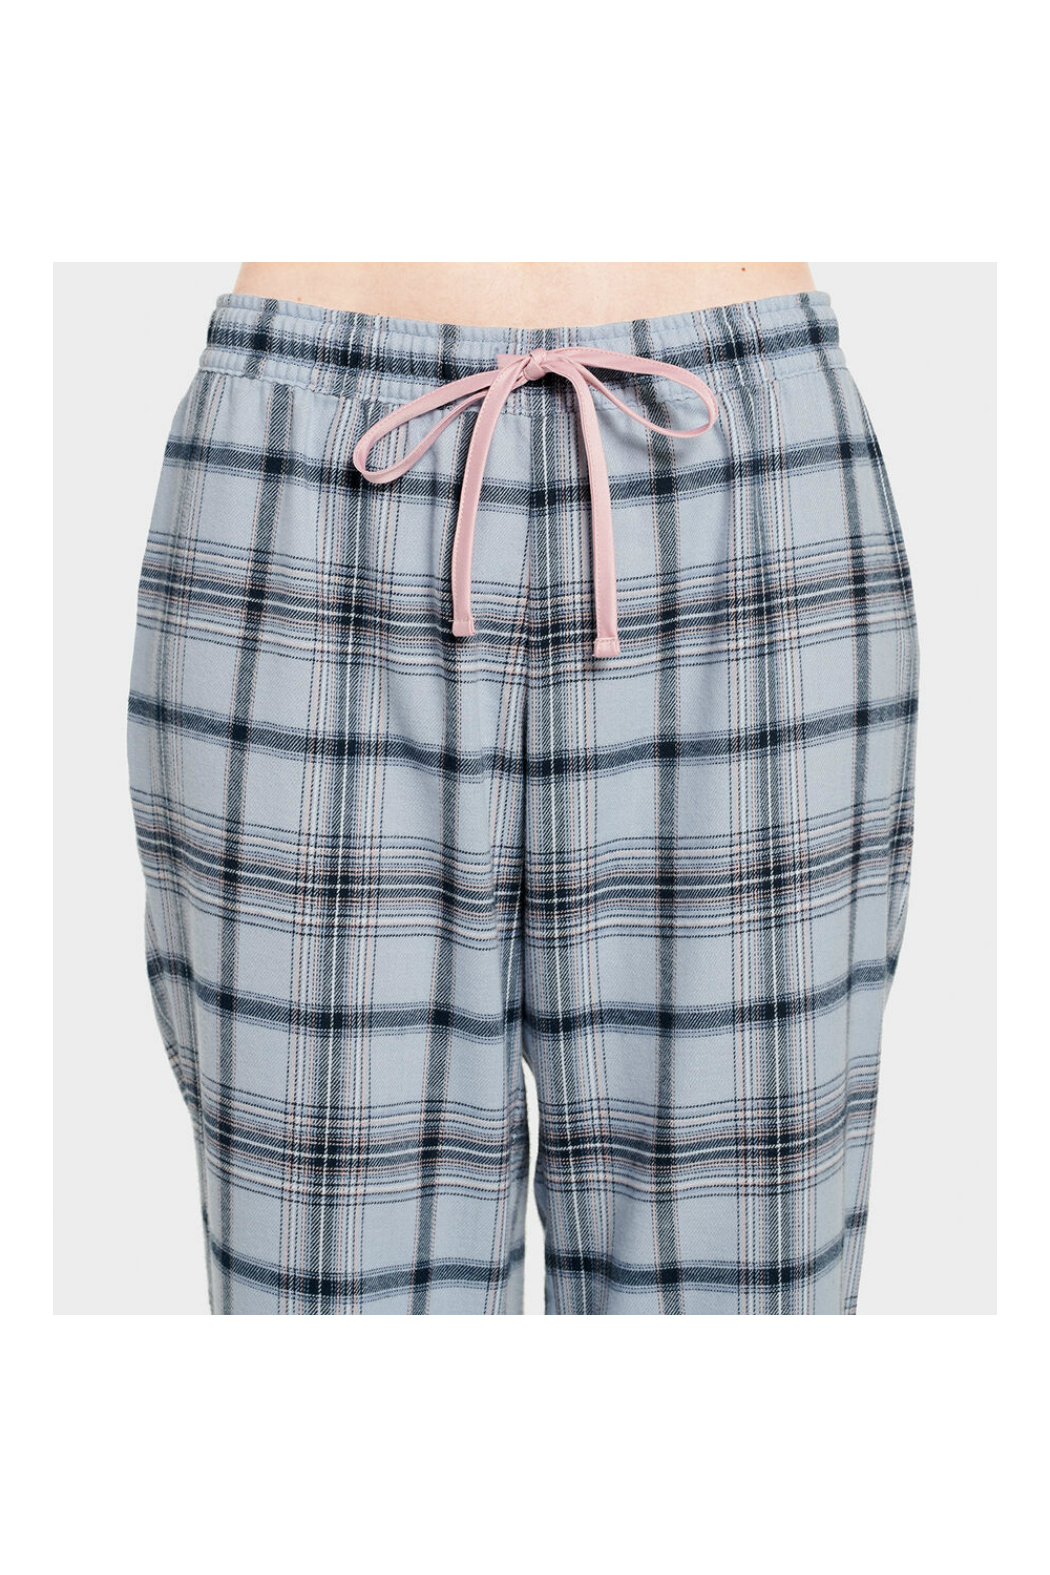 Ugg RAVEN FLANNEL PJ SET - Back Cropped Image